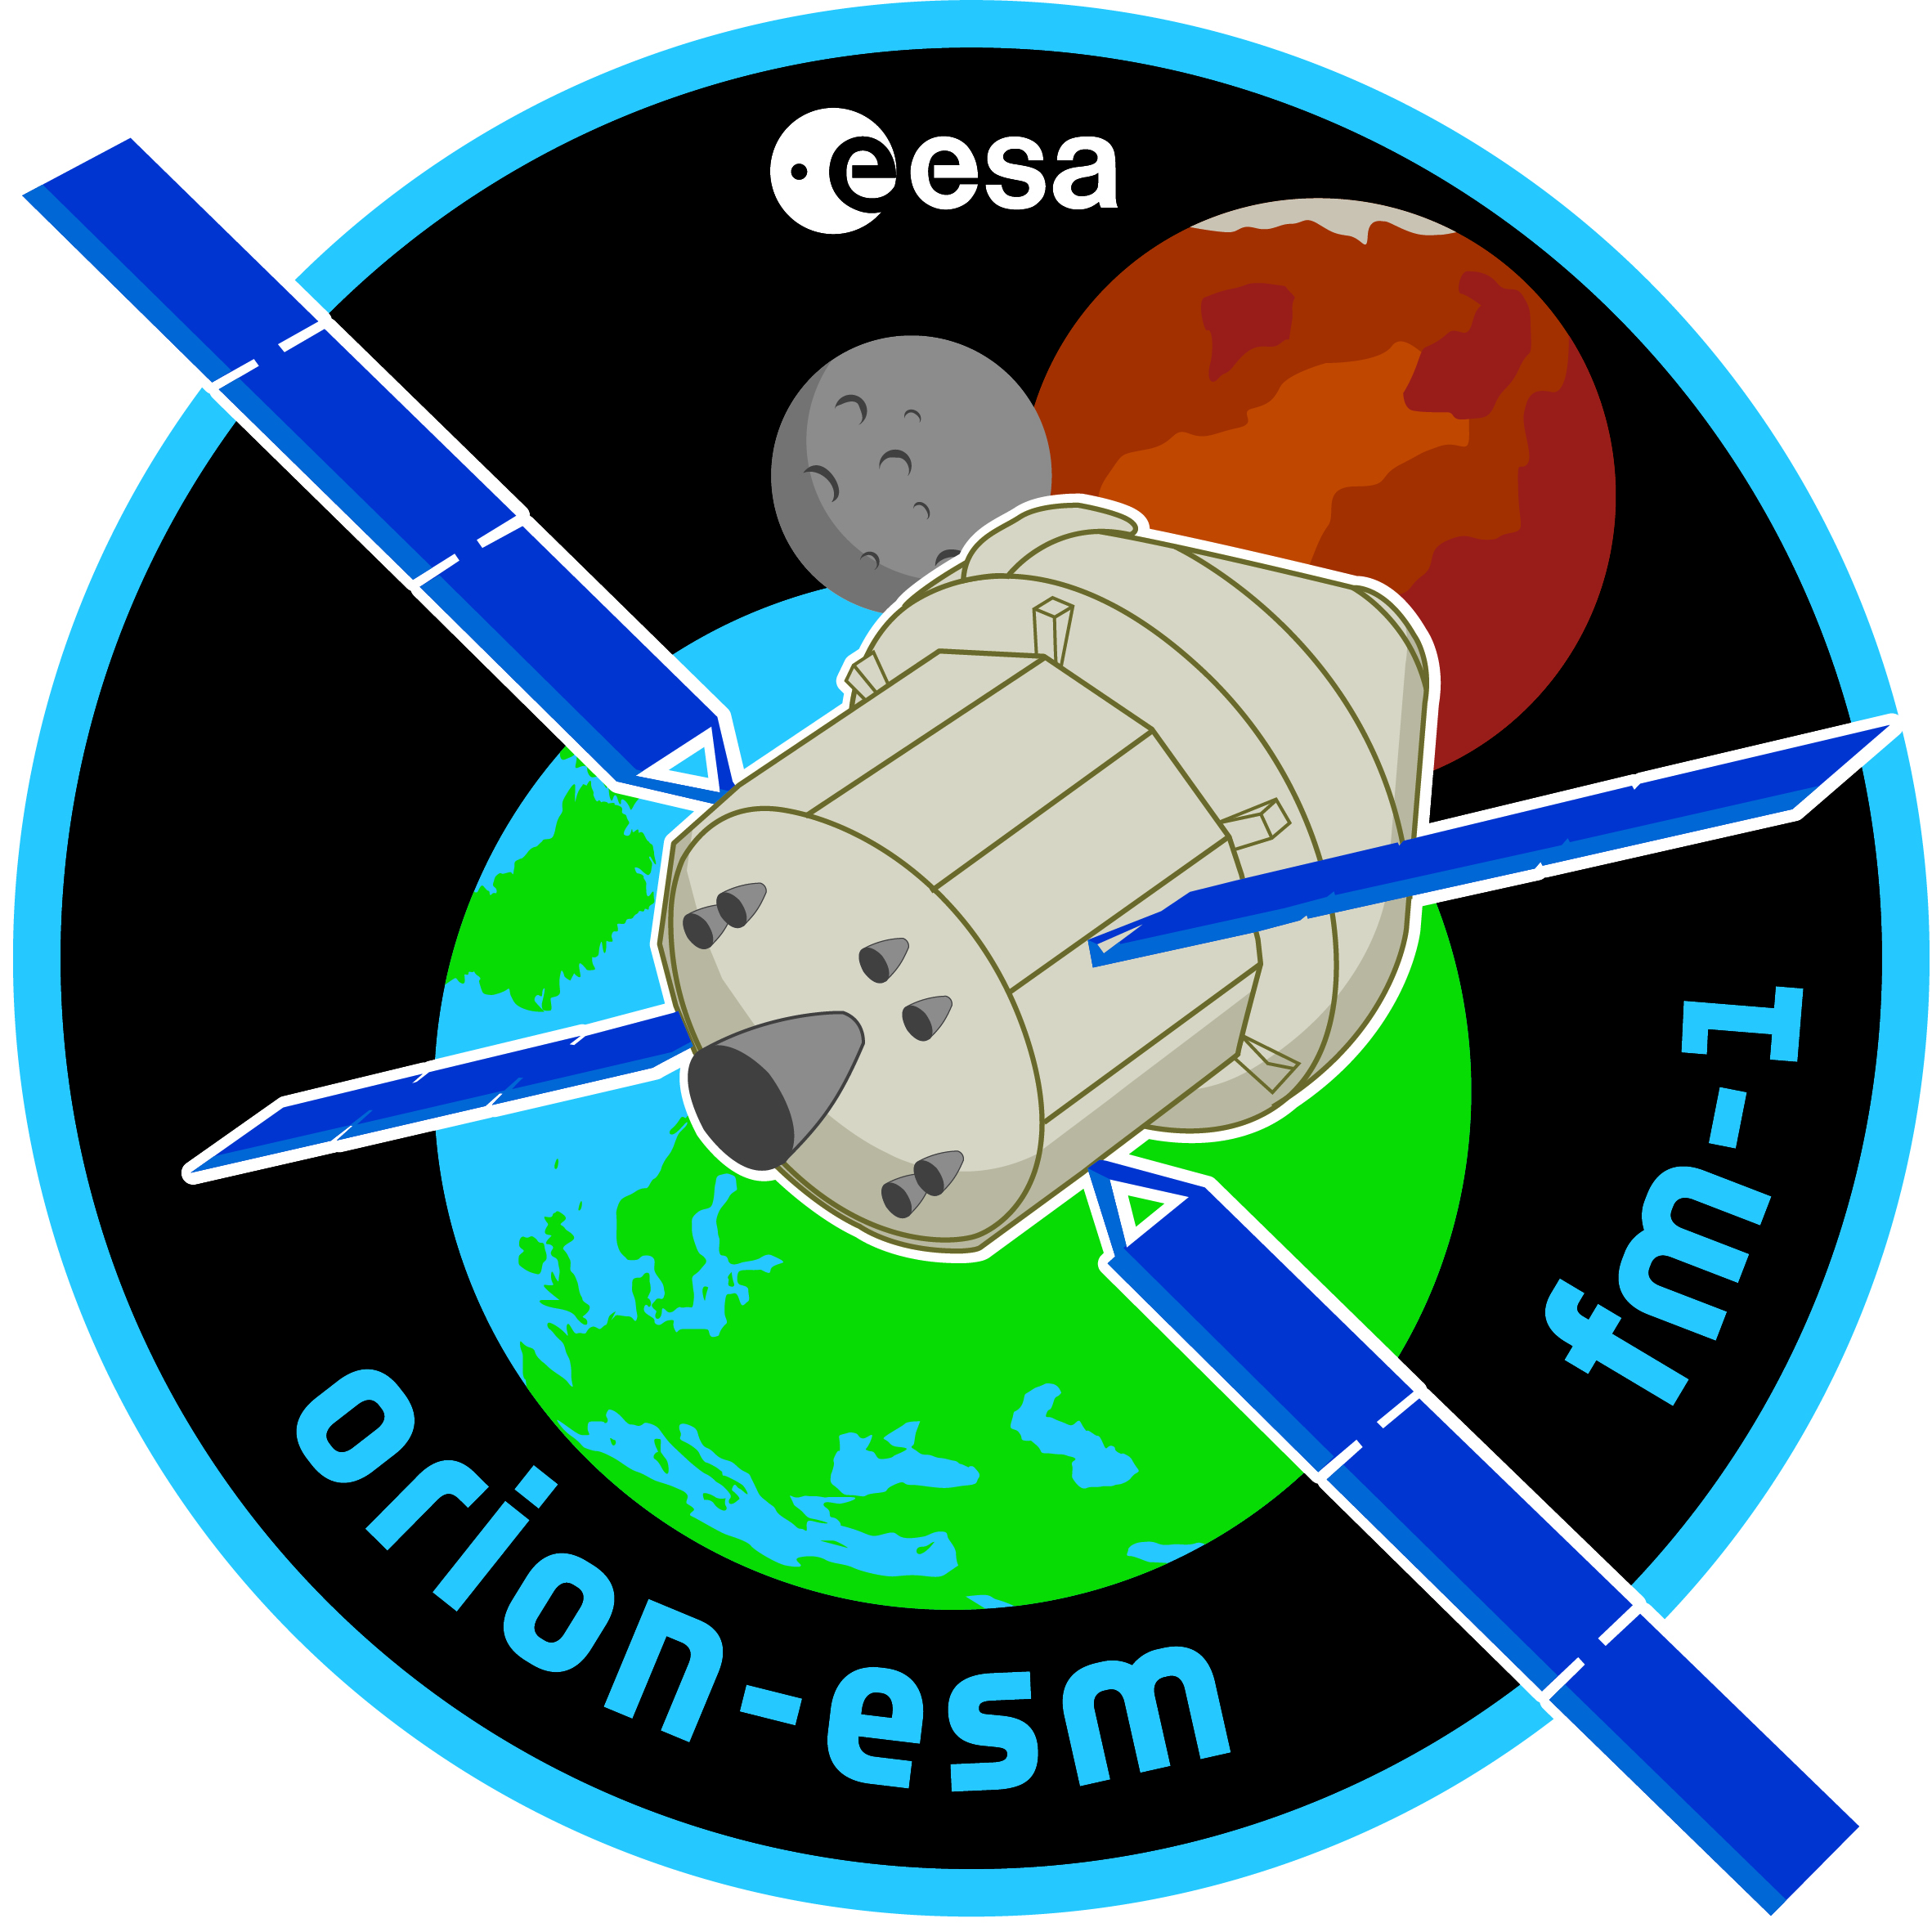 Exploration Mission 1 / Orion / Human Spaceflight / Our Activities.